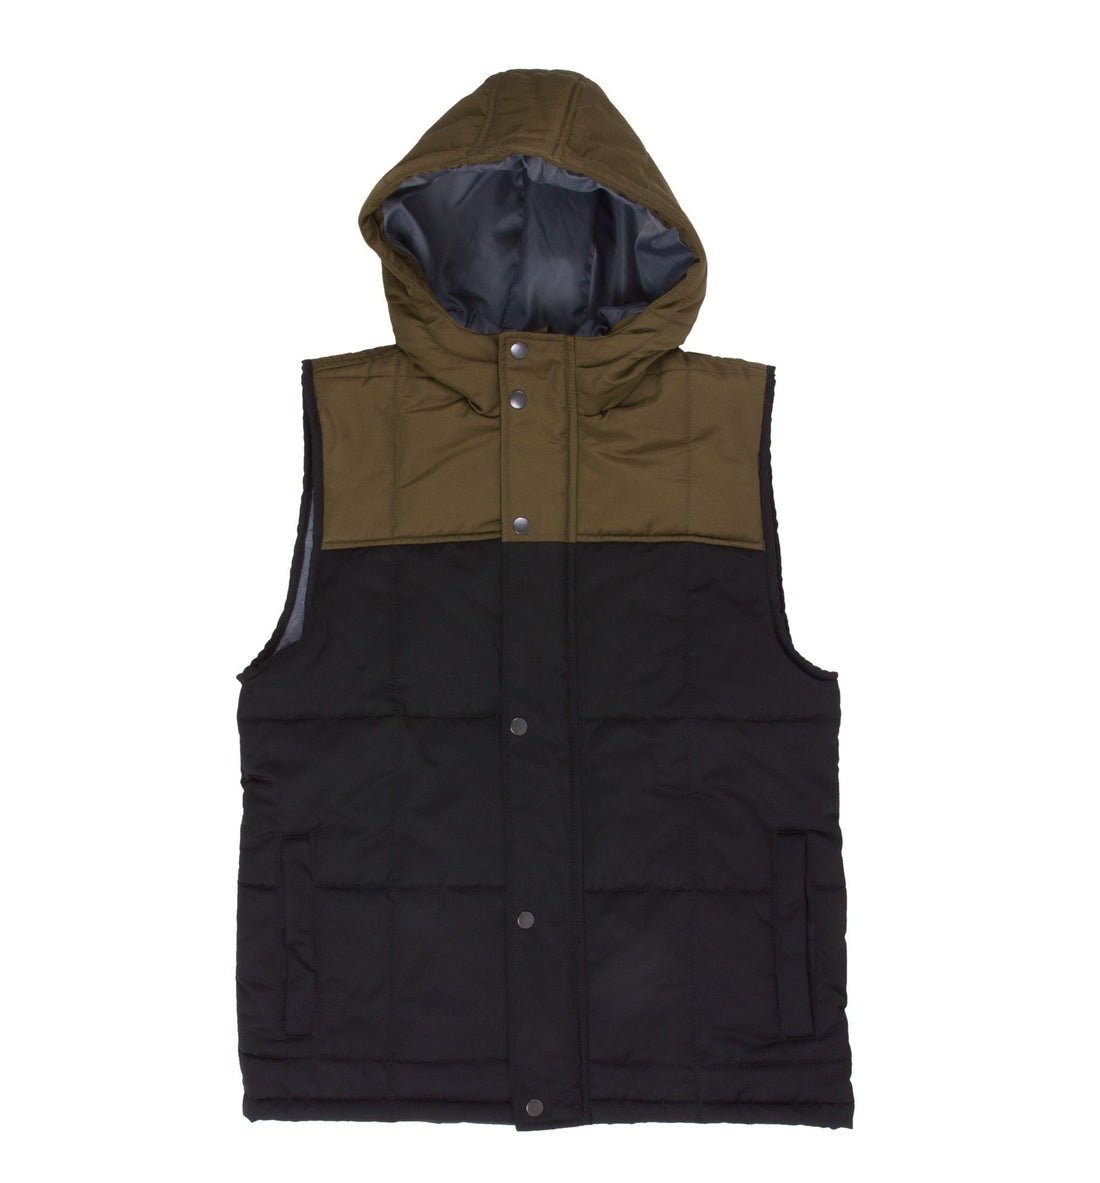 Treeline Vest - Outerwear - Iron and Resin